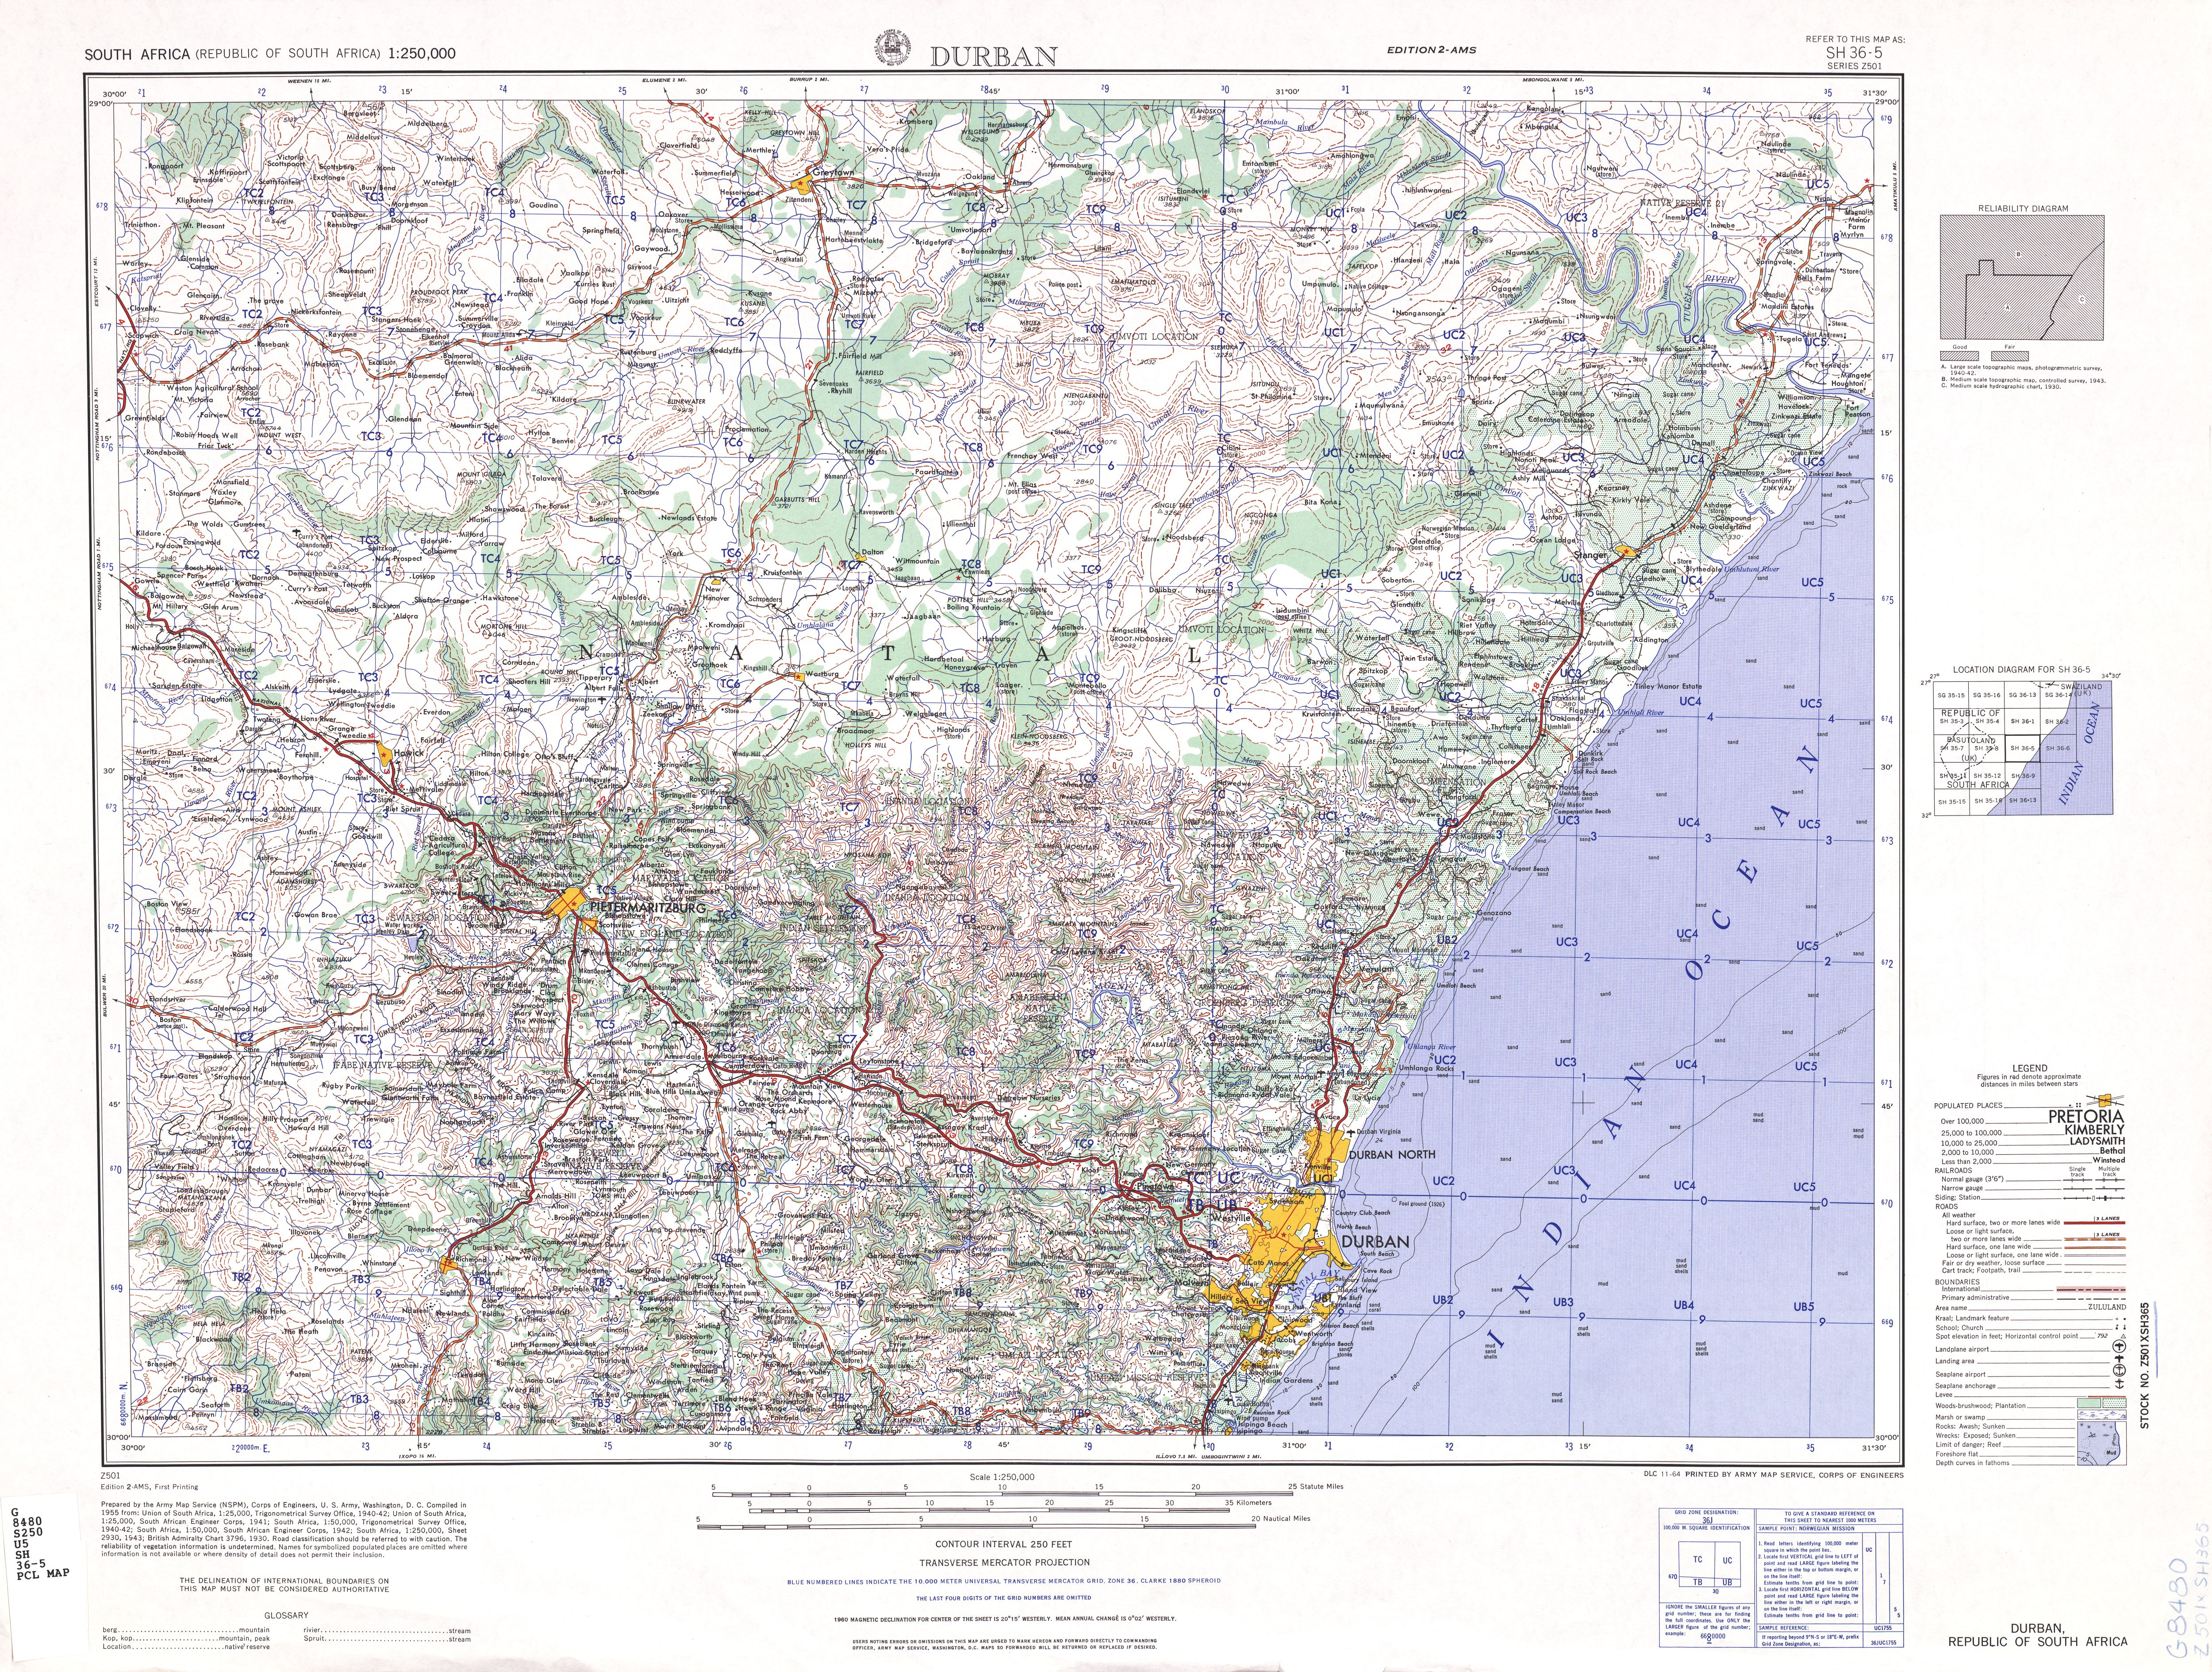 Durban Topographic Map Sheet, South Africa 1954